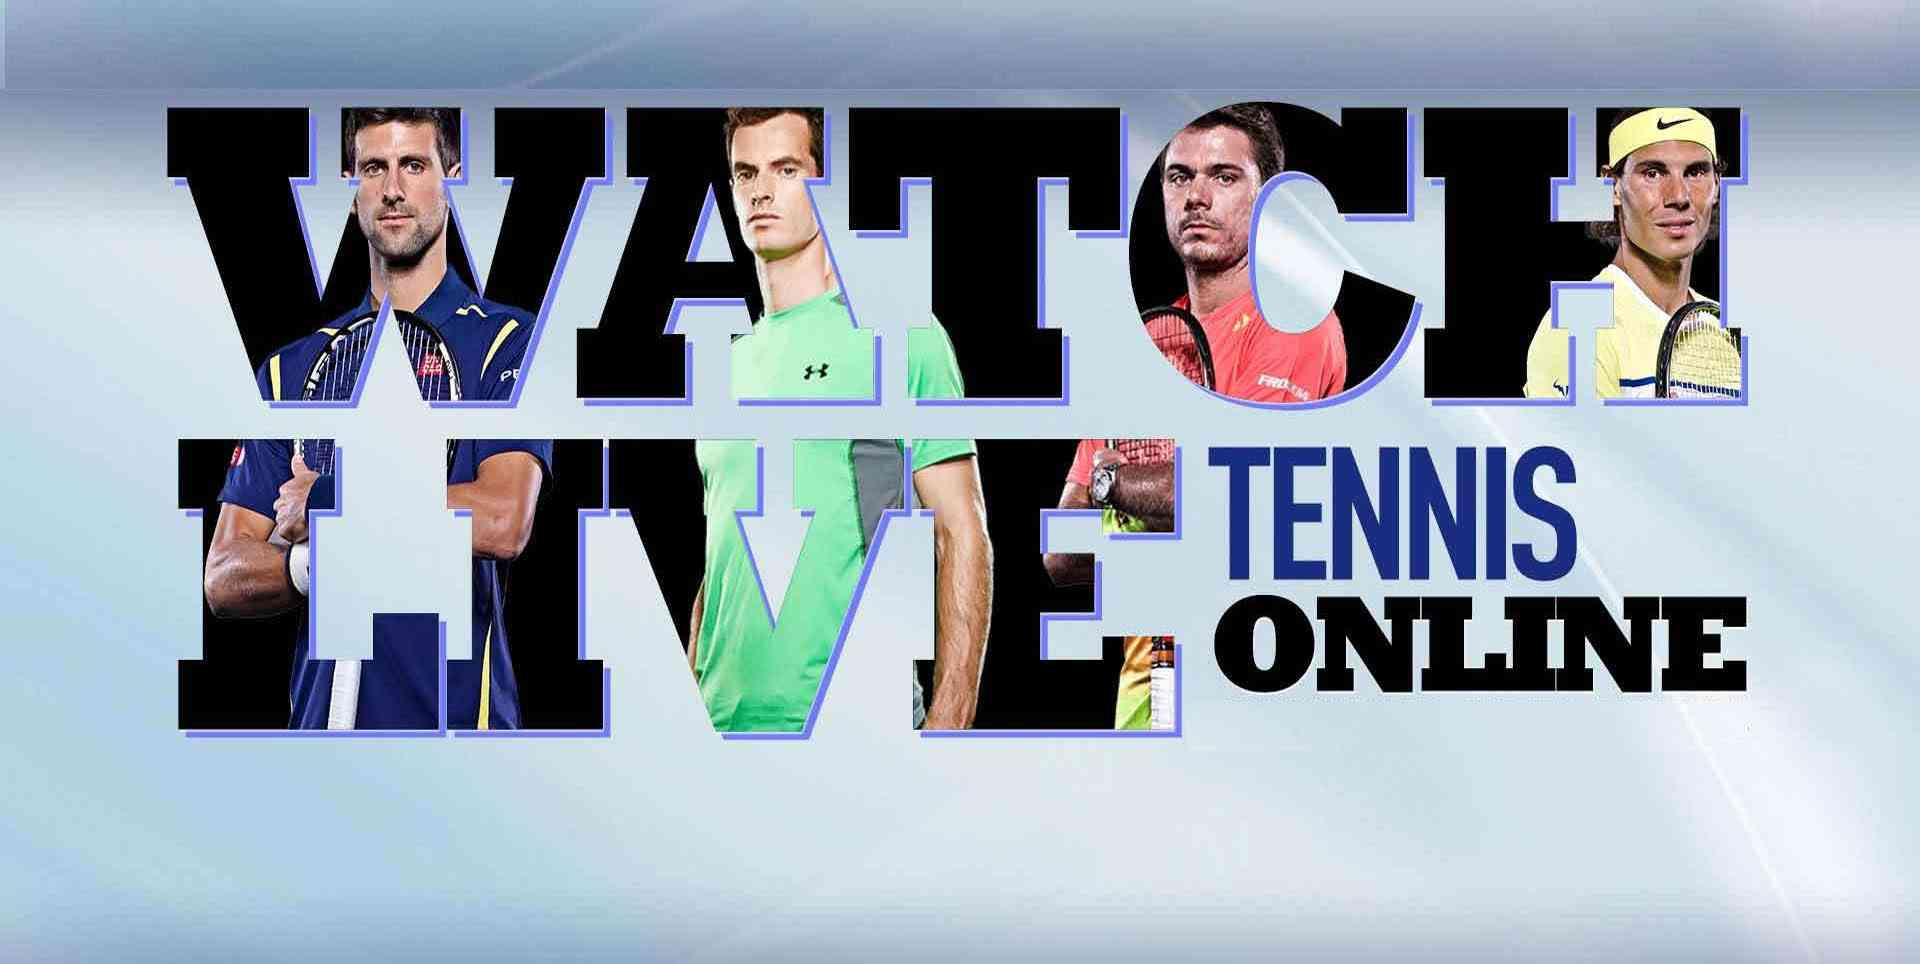 watch-v.-pospisil-|-j.-sock-vs-l.-paes-|-r.-stepanek-semi-final-online